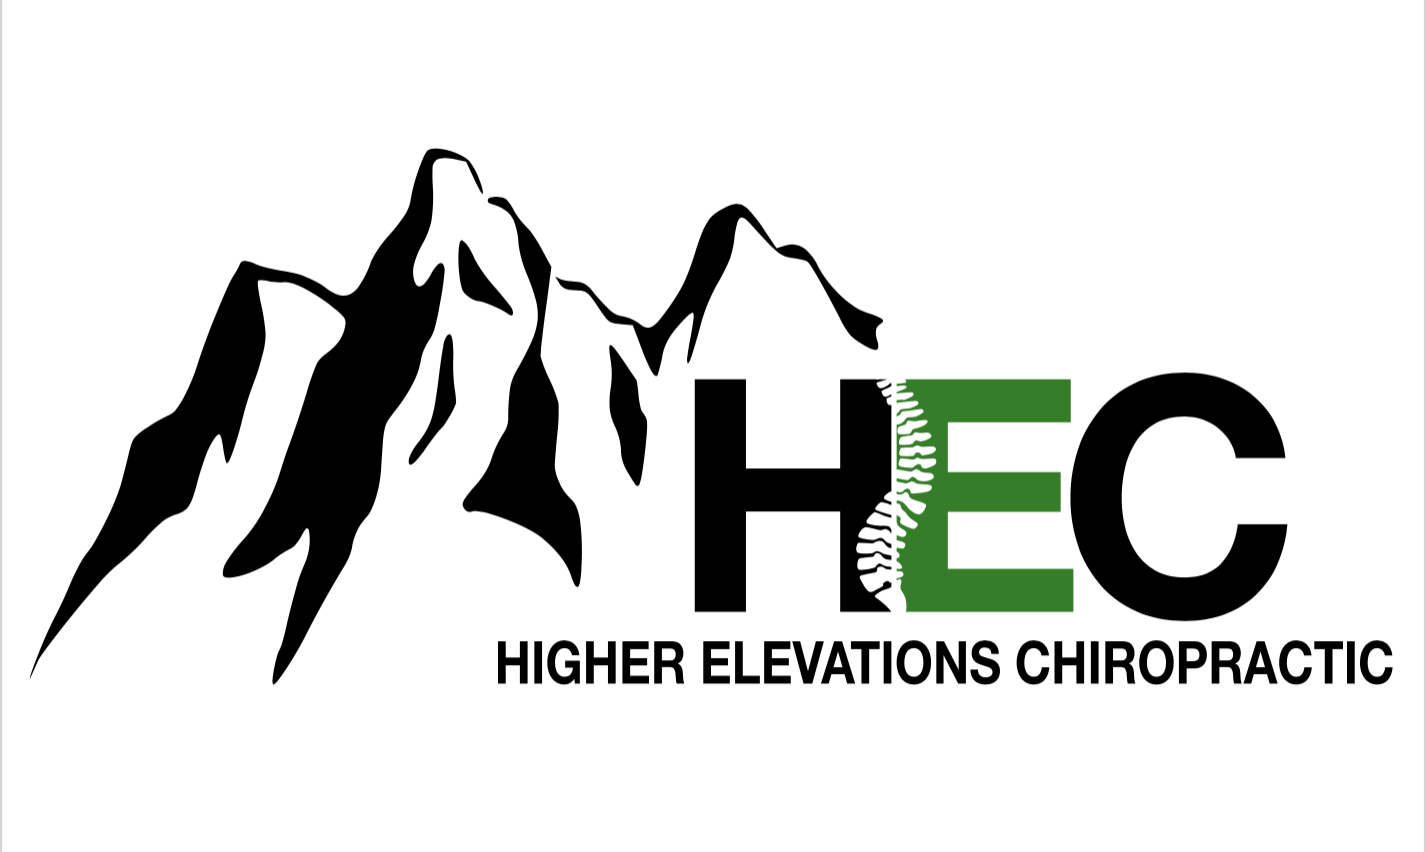 Higher Elevation Chiropractic